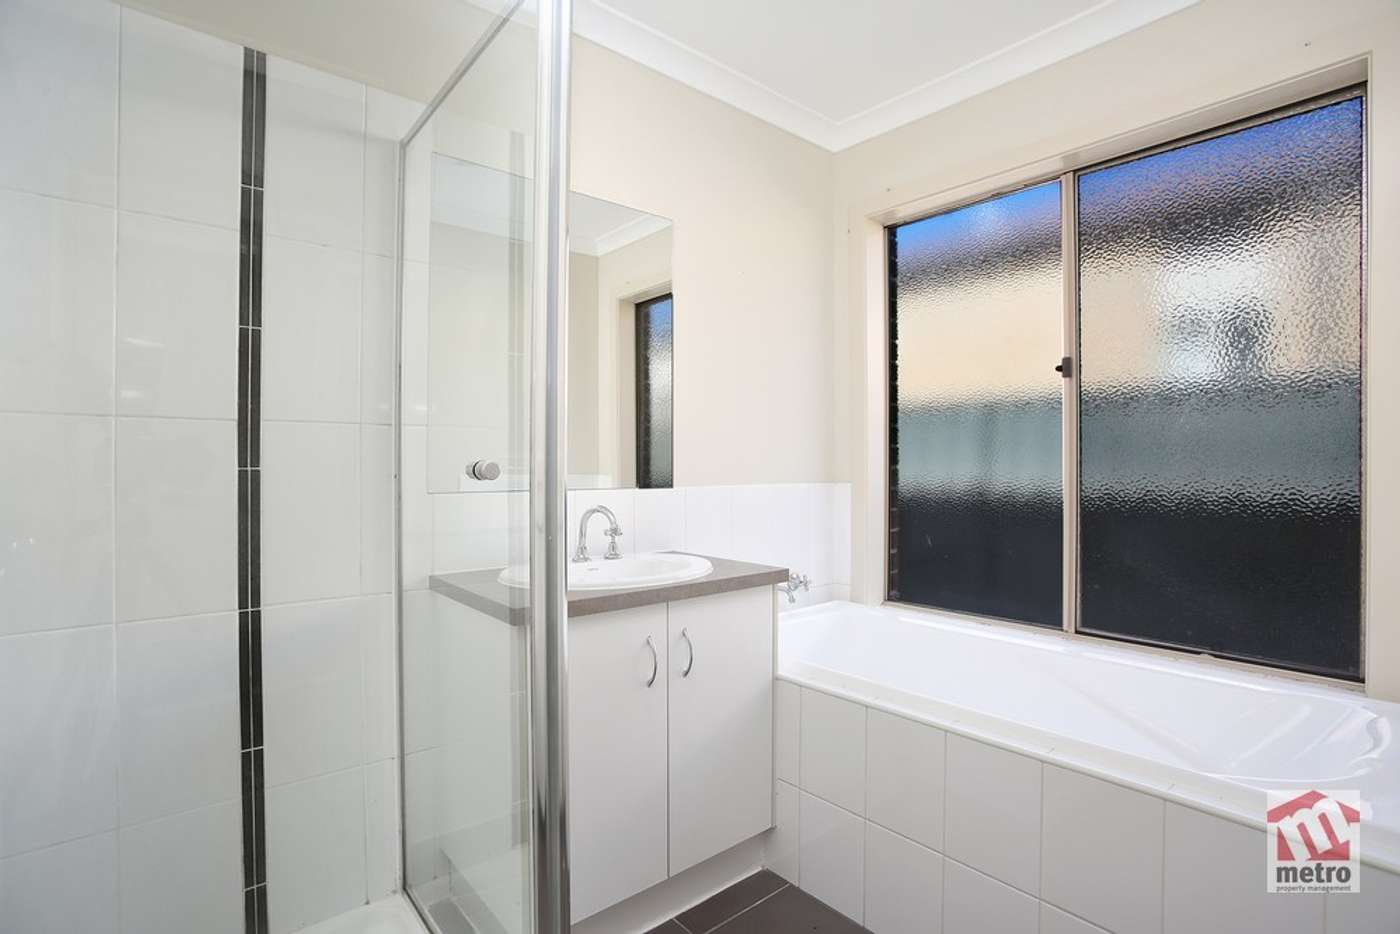 Sixth view of Homely house listing, 6 Circuit Drive, Truganina VIC 3029